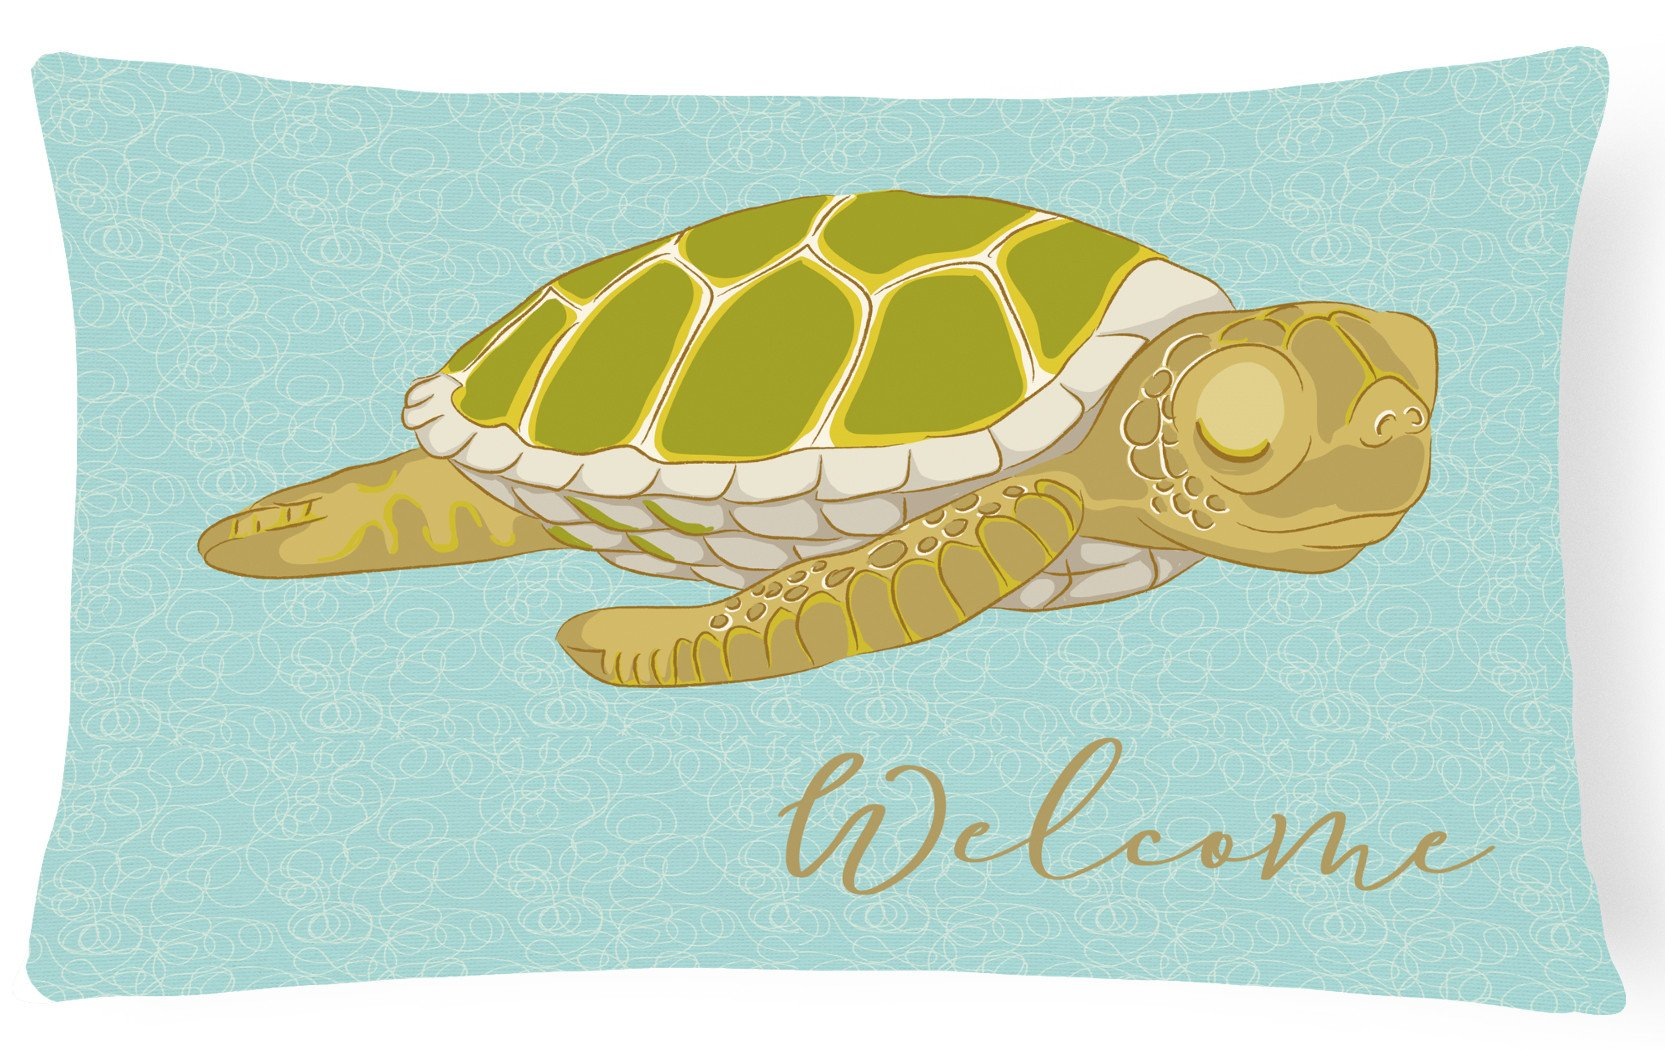 Sea Turtle Welcome Canvas Fabric Decorative Pillow BB8562PW1216 by Caroline's Treasures